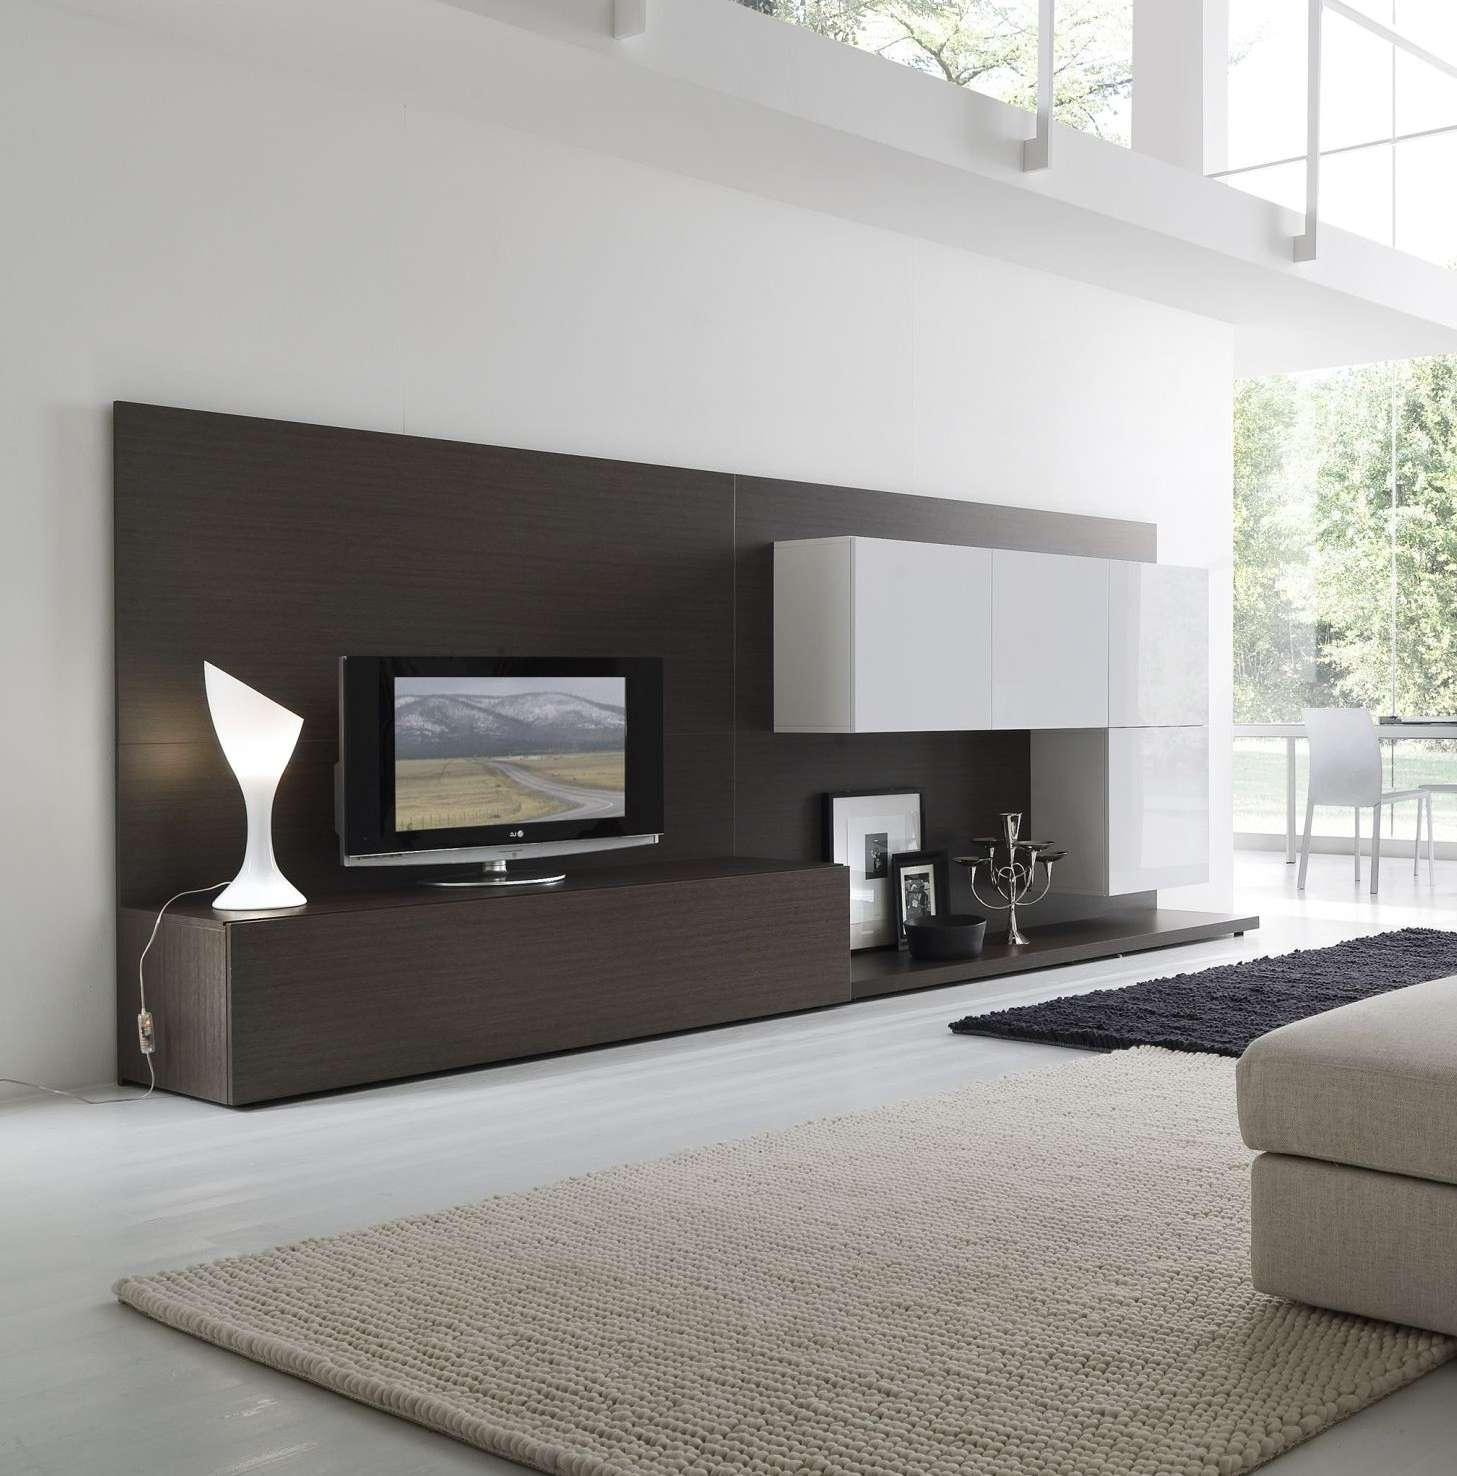 Tv Cabinets Contemporary Decor Color Ideas Amazing Simple Under Throughout Tv Cabinets Contemporary Design (View 20 of 20)